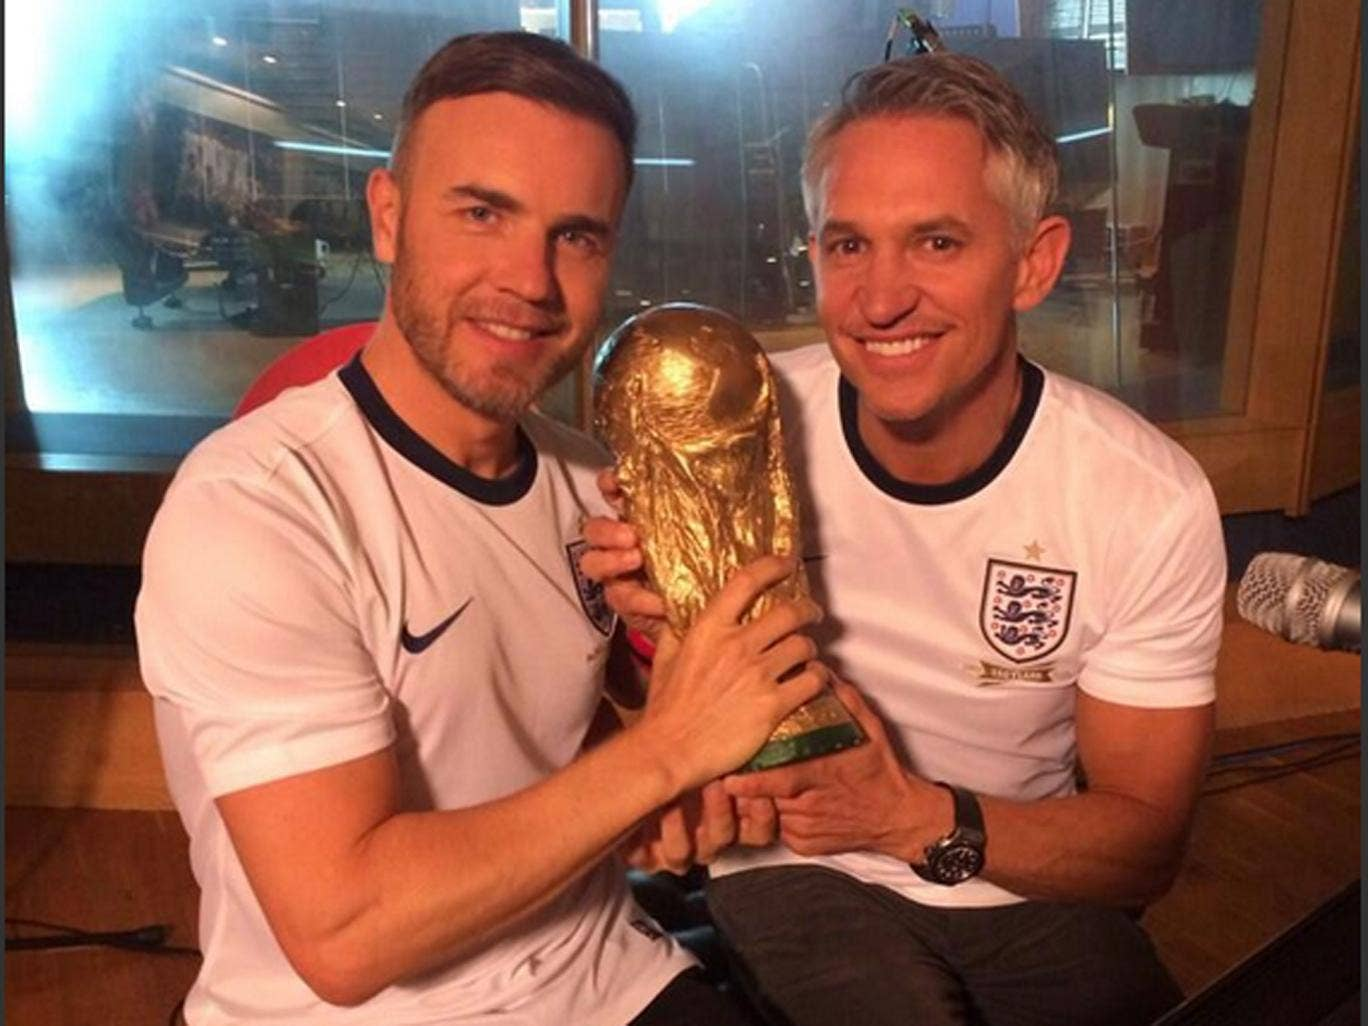 Gary Lineker tweeted this photo of himself and Gary Barlow from the studio where the World Cup song's video is being filmed